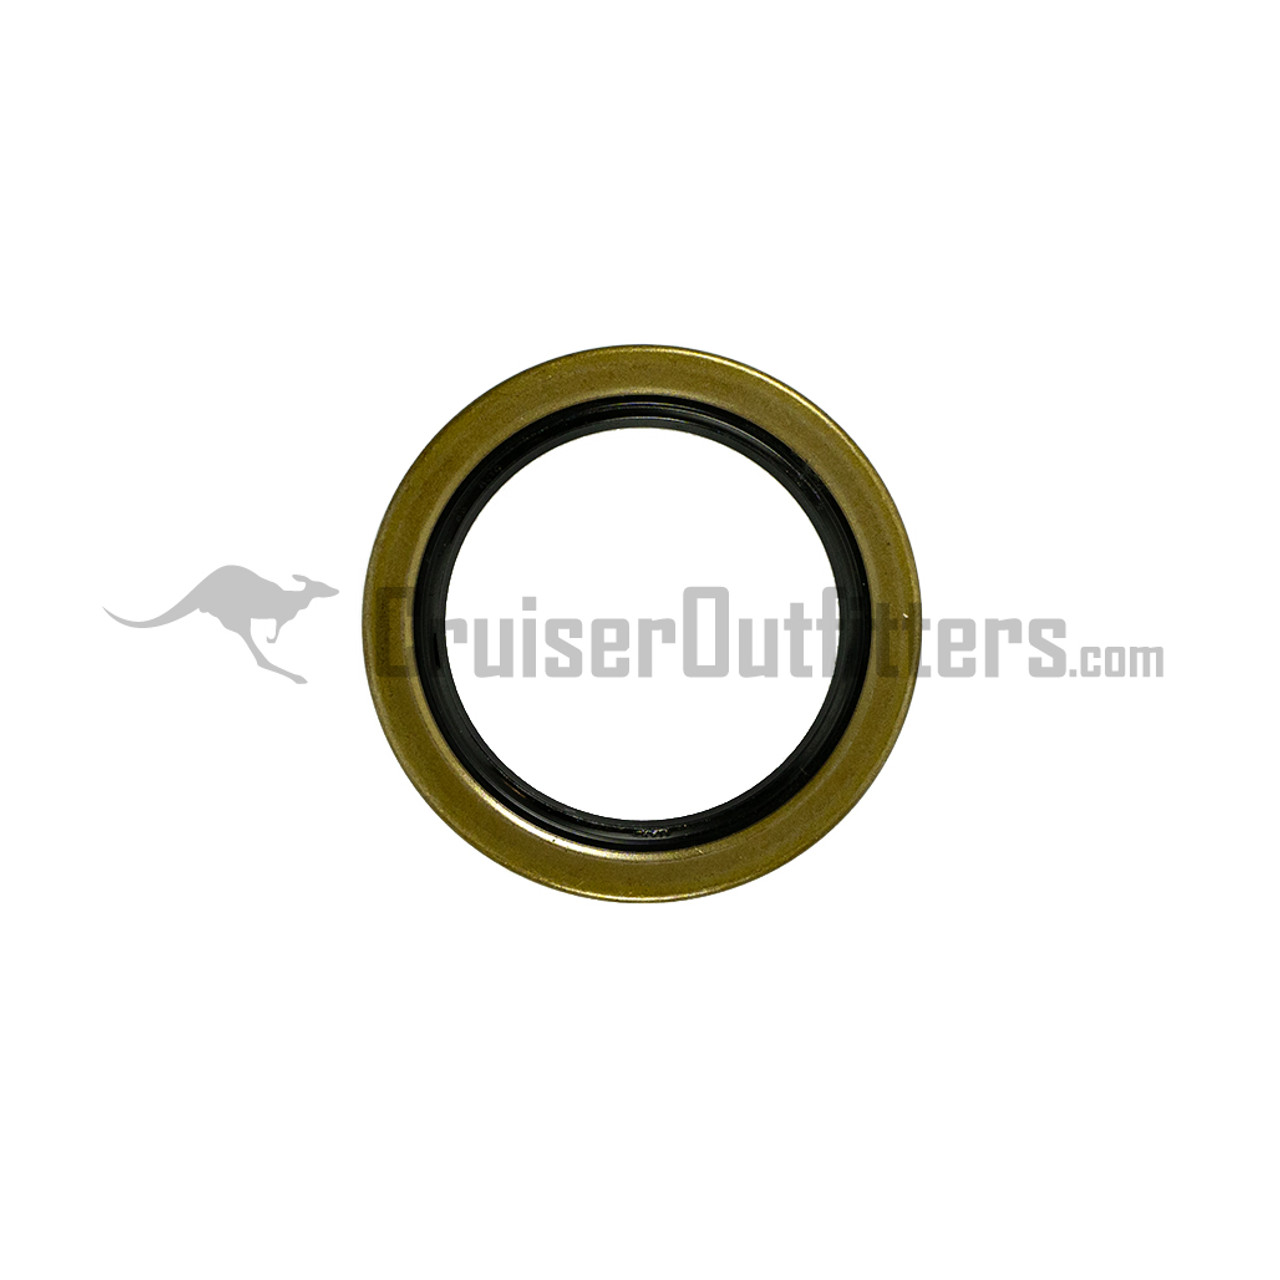 Front Hub / Wheel Seal - Japanese - Fits 9/1975 - 1997 4x/5x/6x/7x/8x/PU/4R - Disc Brake Front Axle (2 Required per Axle) (HG62001)